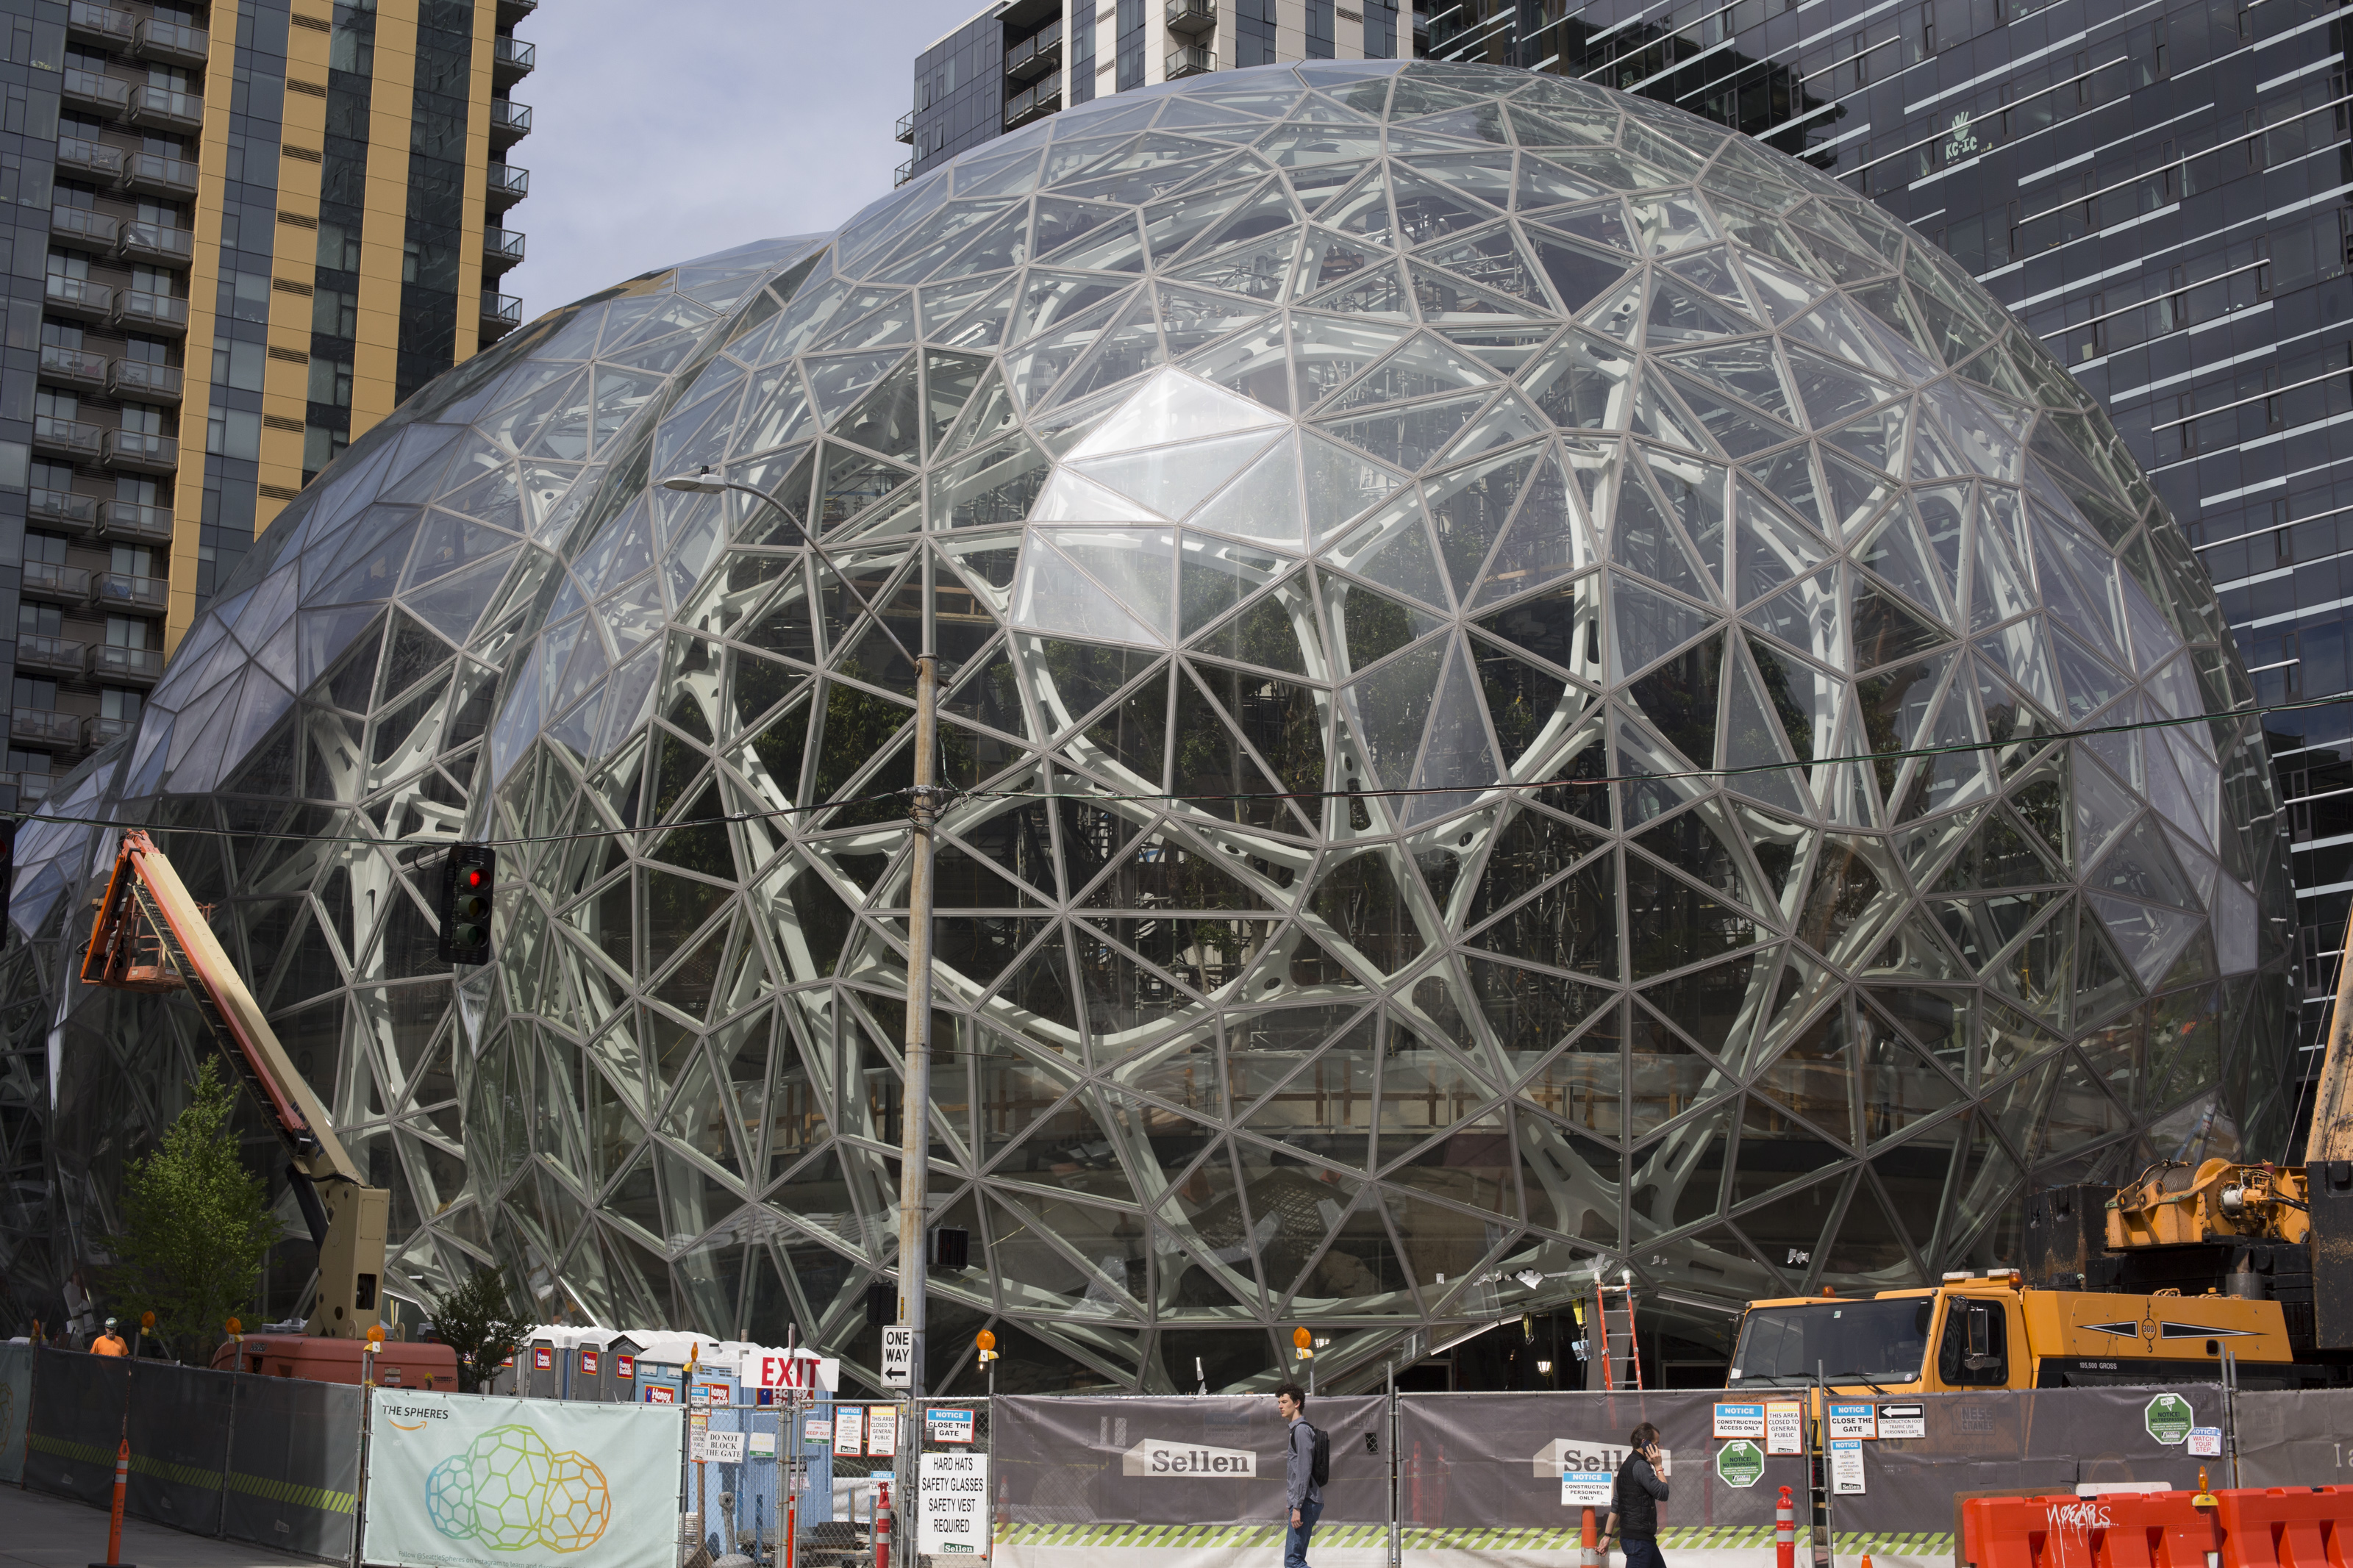 Amazon corporate headquarters in Seattle. The tech giants in America are growing into monopolies.